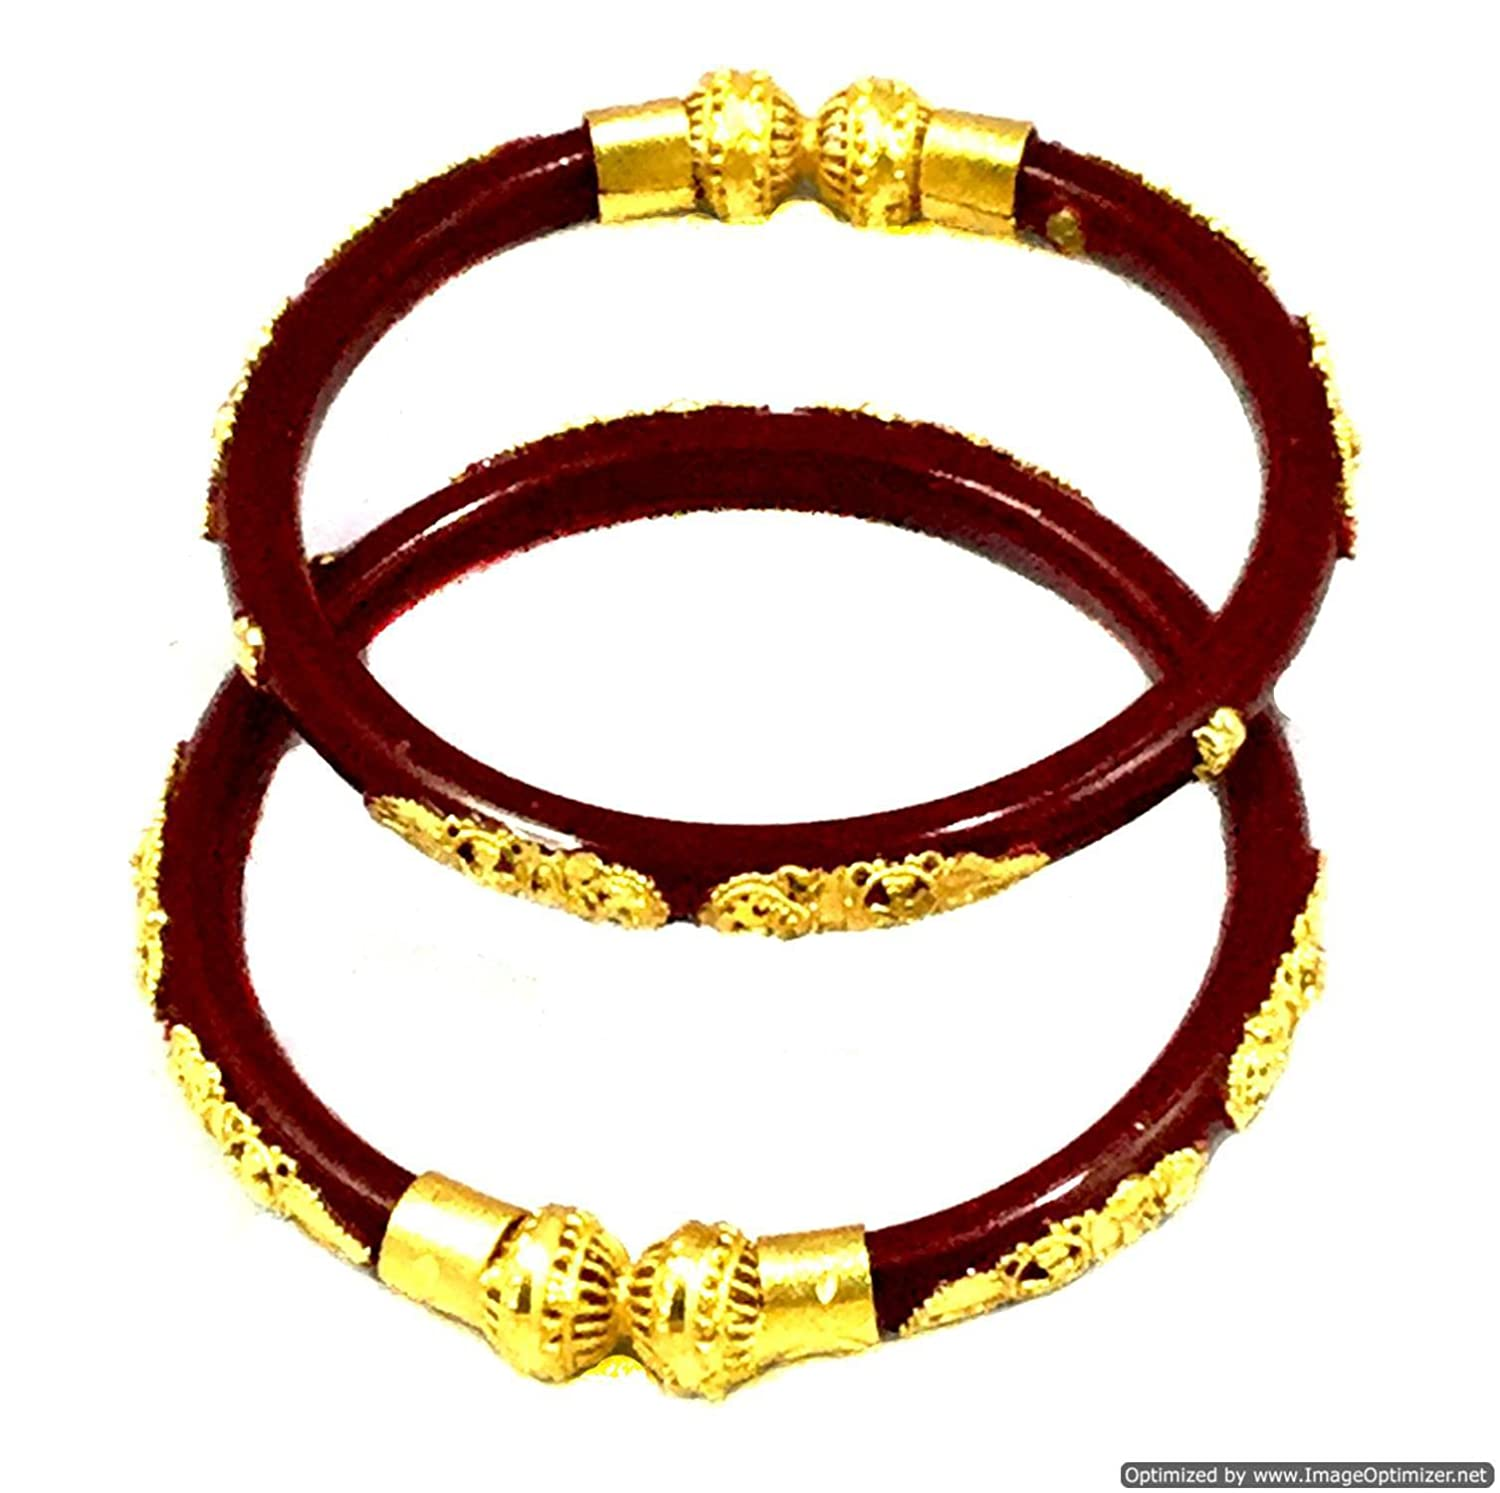 us to bollywood fashion jewelry take women is longer plated in bracelet ebay en indian deliver located buy chosen this gold product ru country it new another kada bangle jewellery the will